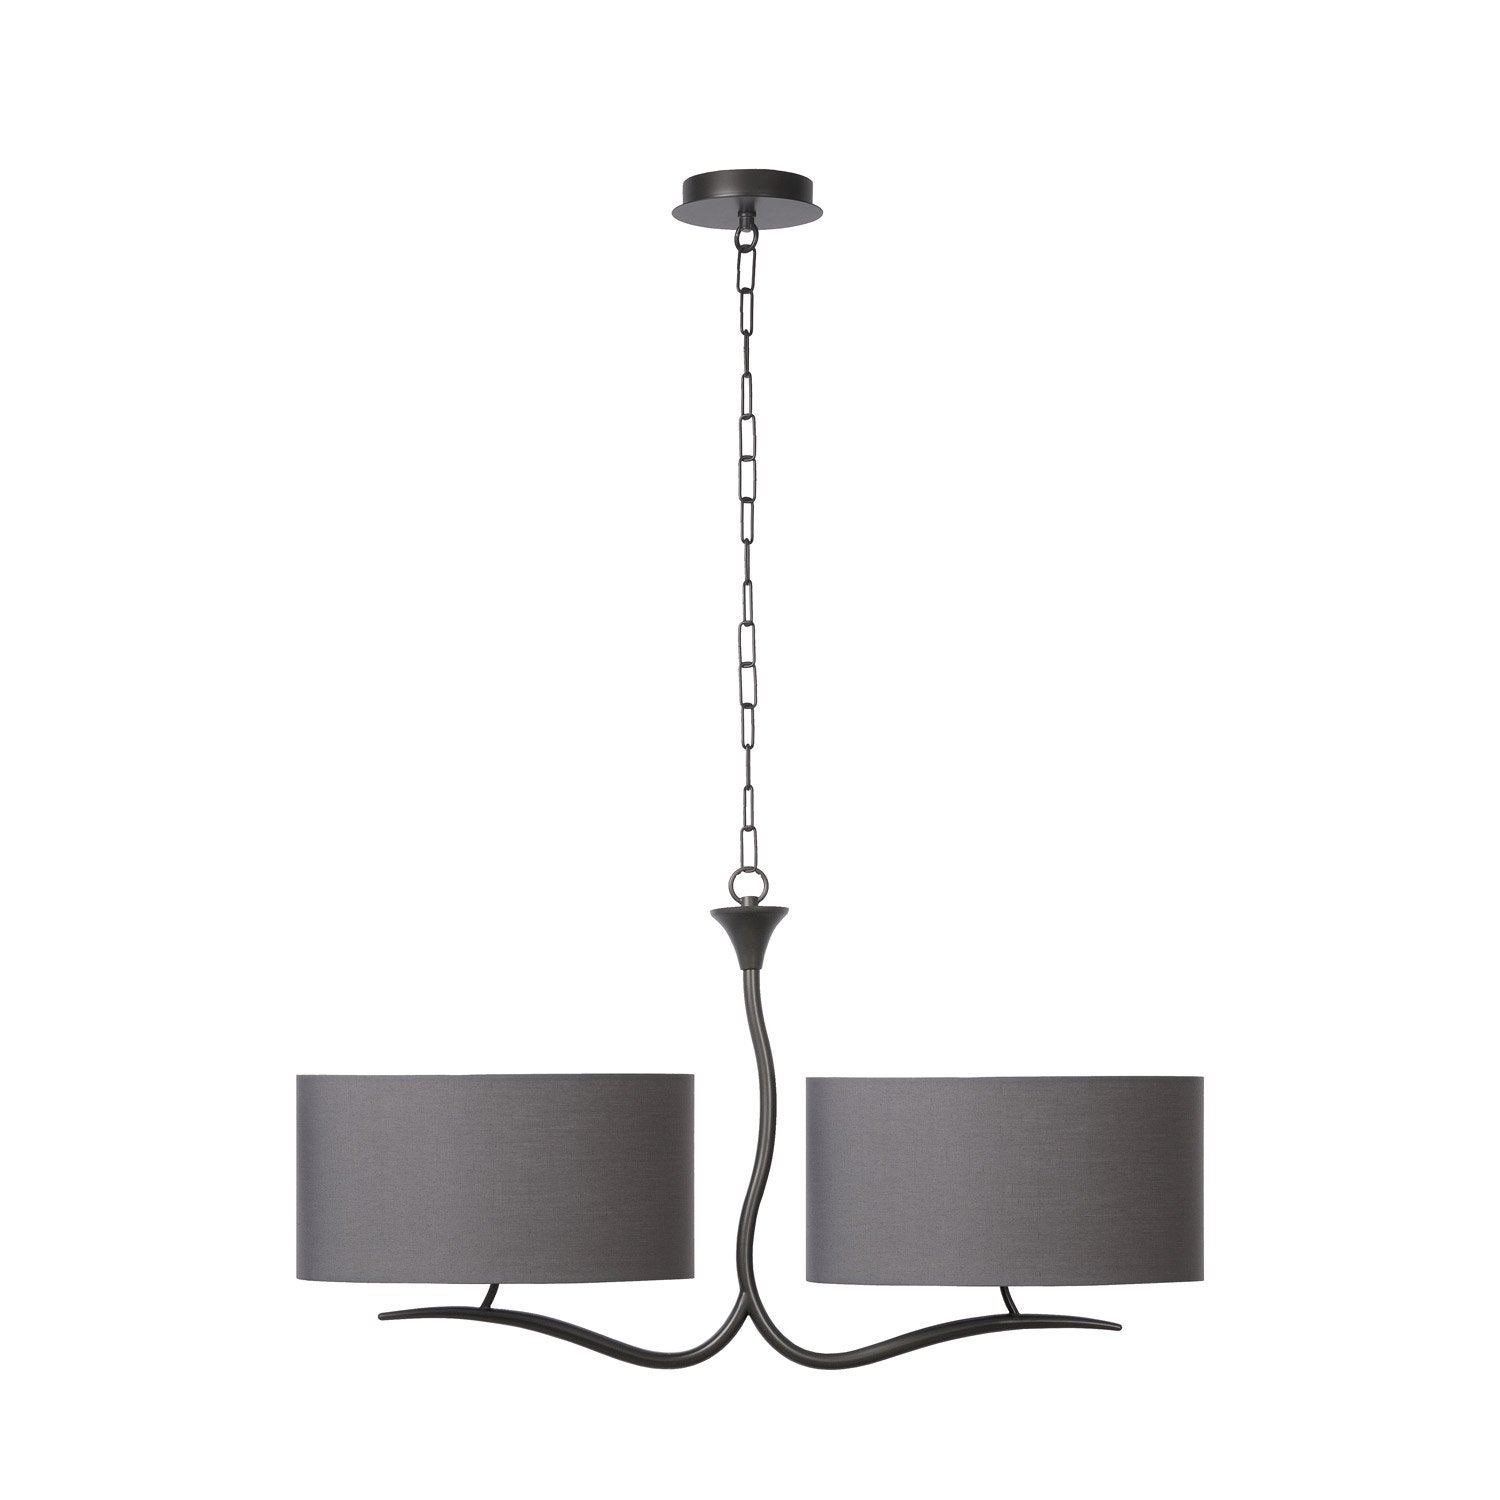 Lustre e27 cordoba m tal gris 2 x 60 w lucide leroy merlin for Leroy merlin cordoba